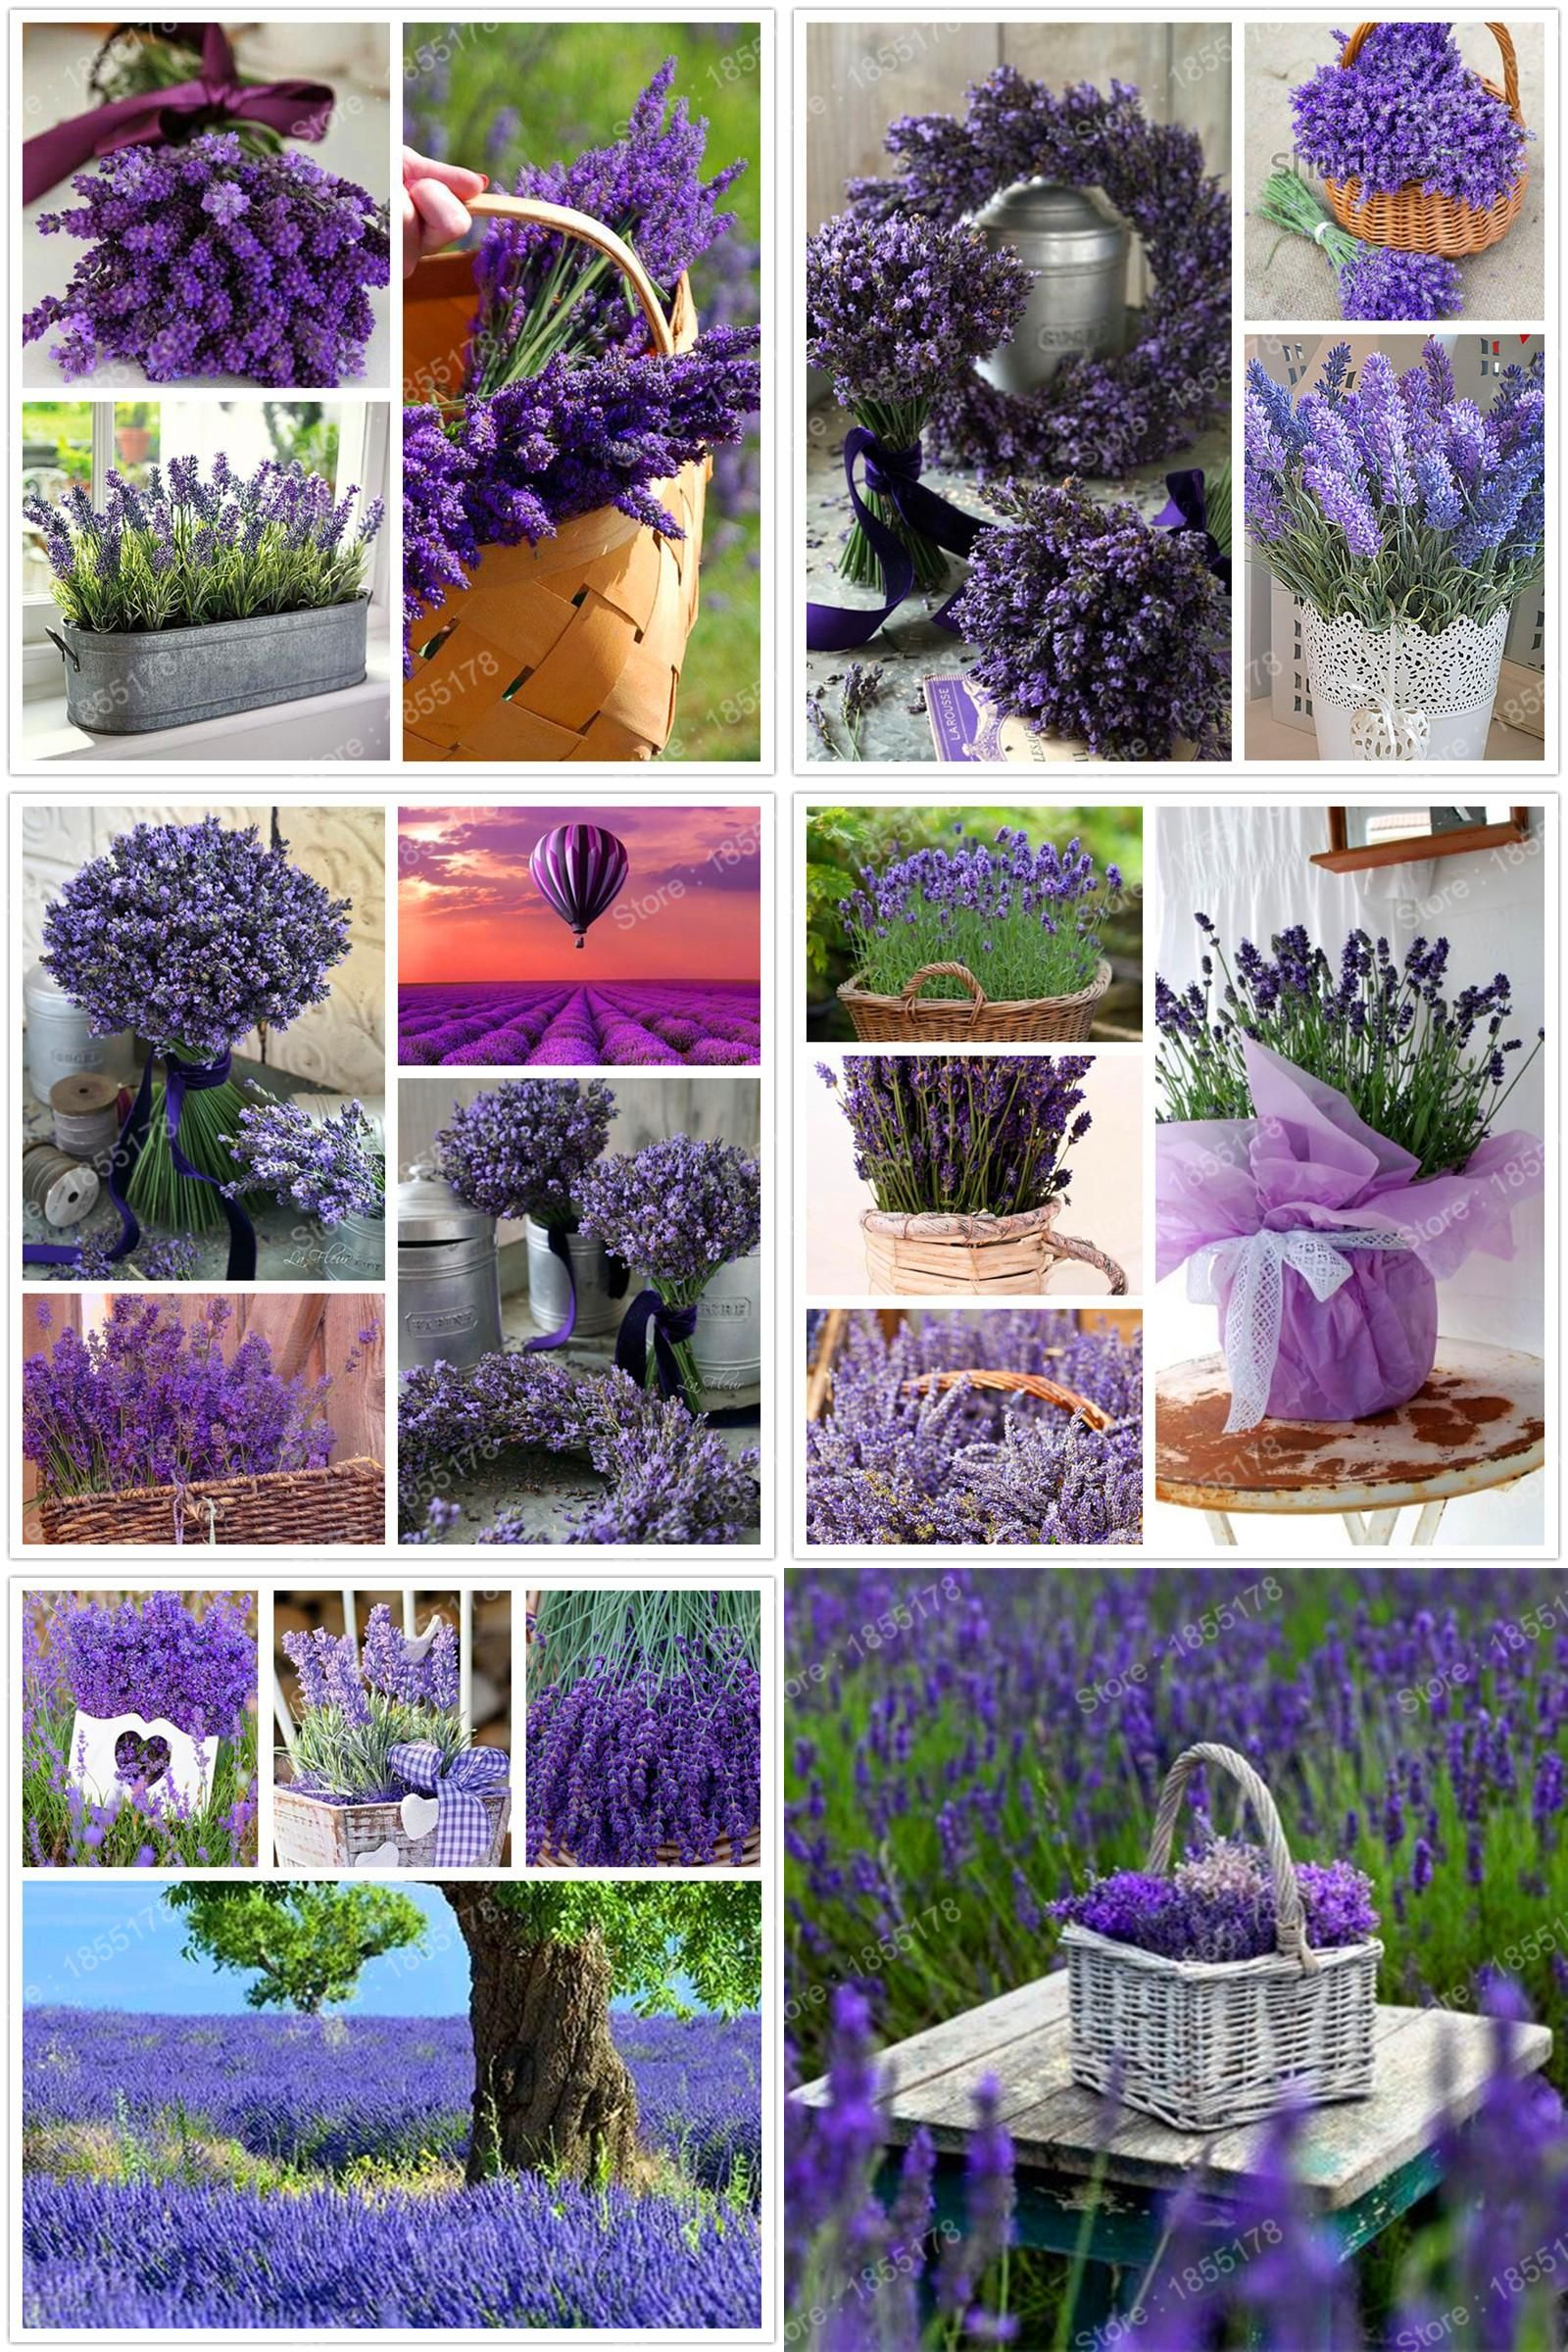 Visit To Buy Wholesale 100pcs Bag English Lavender Flower Seeds Rare Purple Lavender Bonsai Plant Best Gift Flowe Flower Seeds Lavender Flowers Bonsai Plants